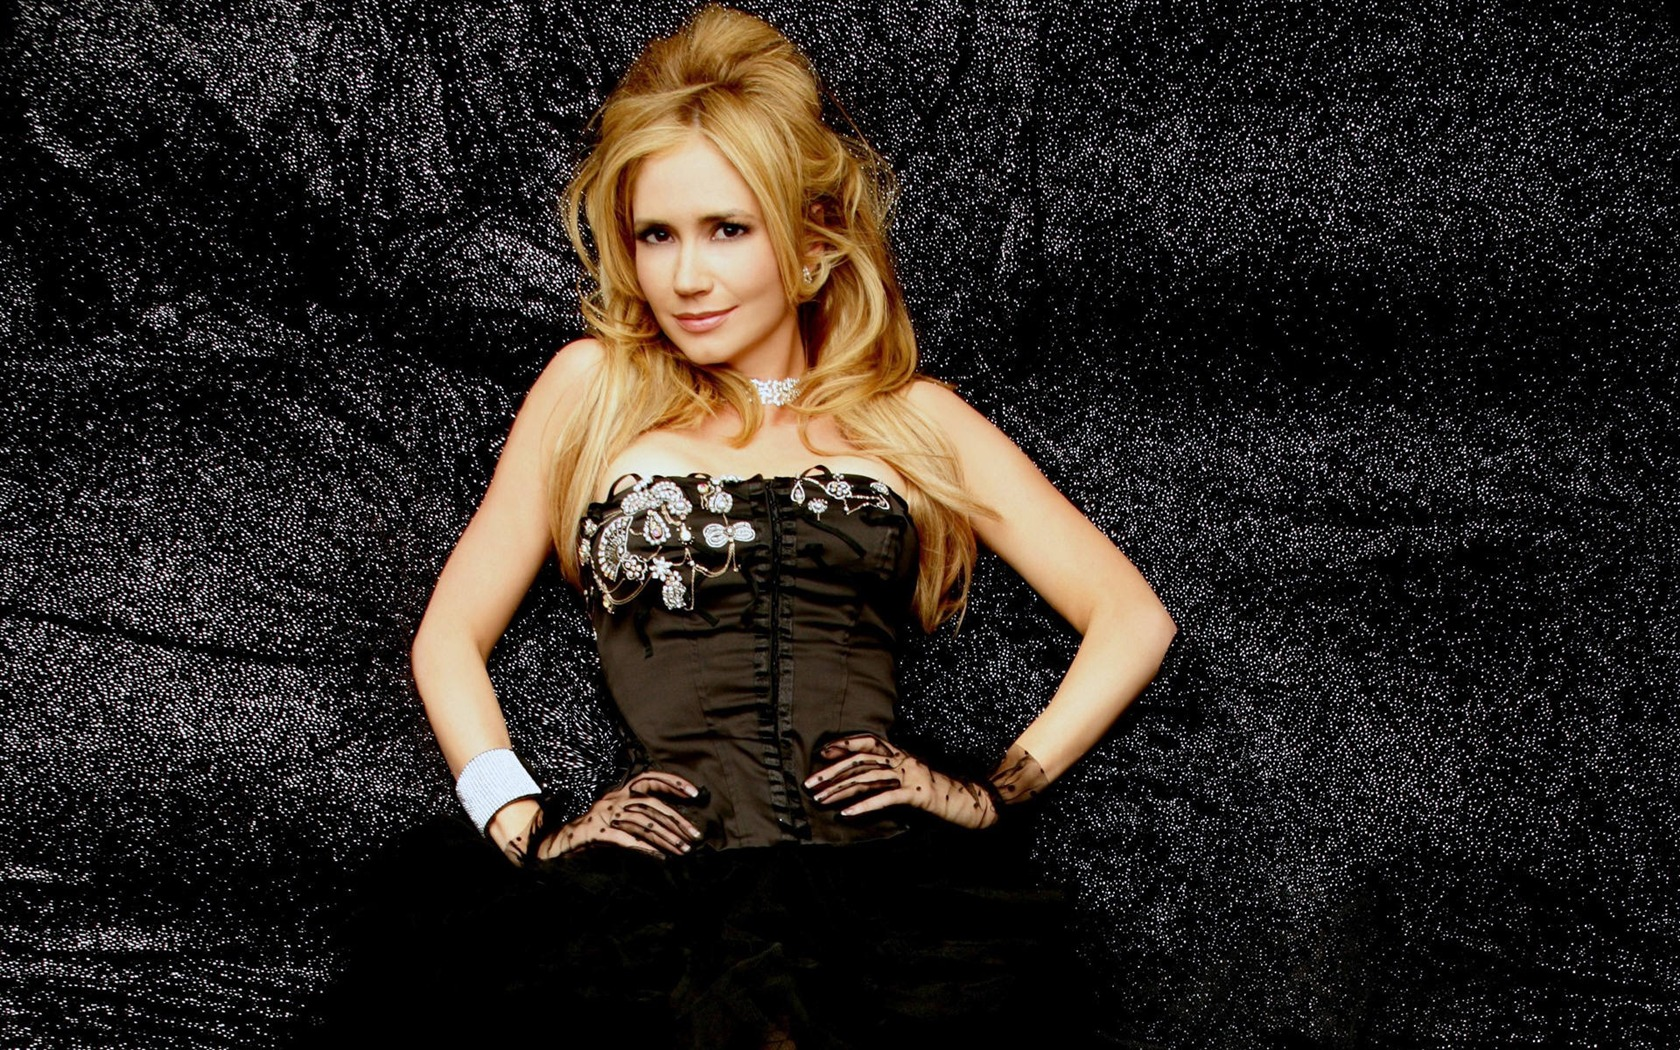 Ashley Jones #009 - 1680x1050 Wallpapers Pictures Photos Images